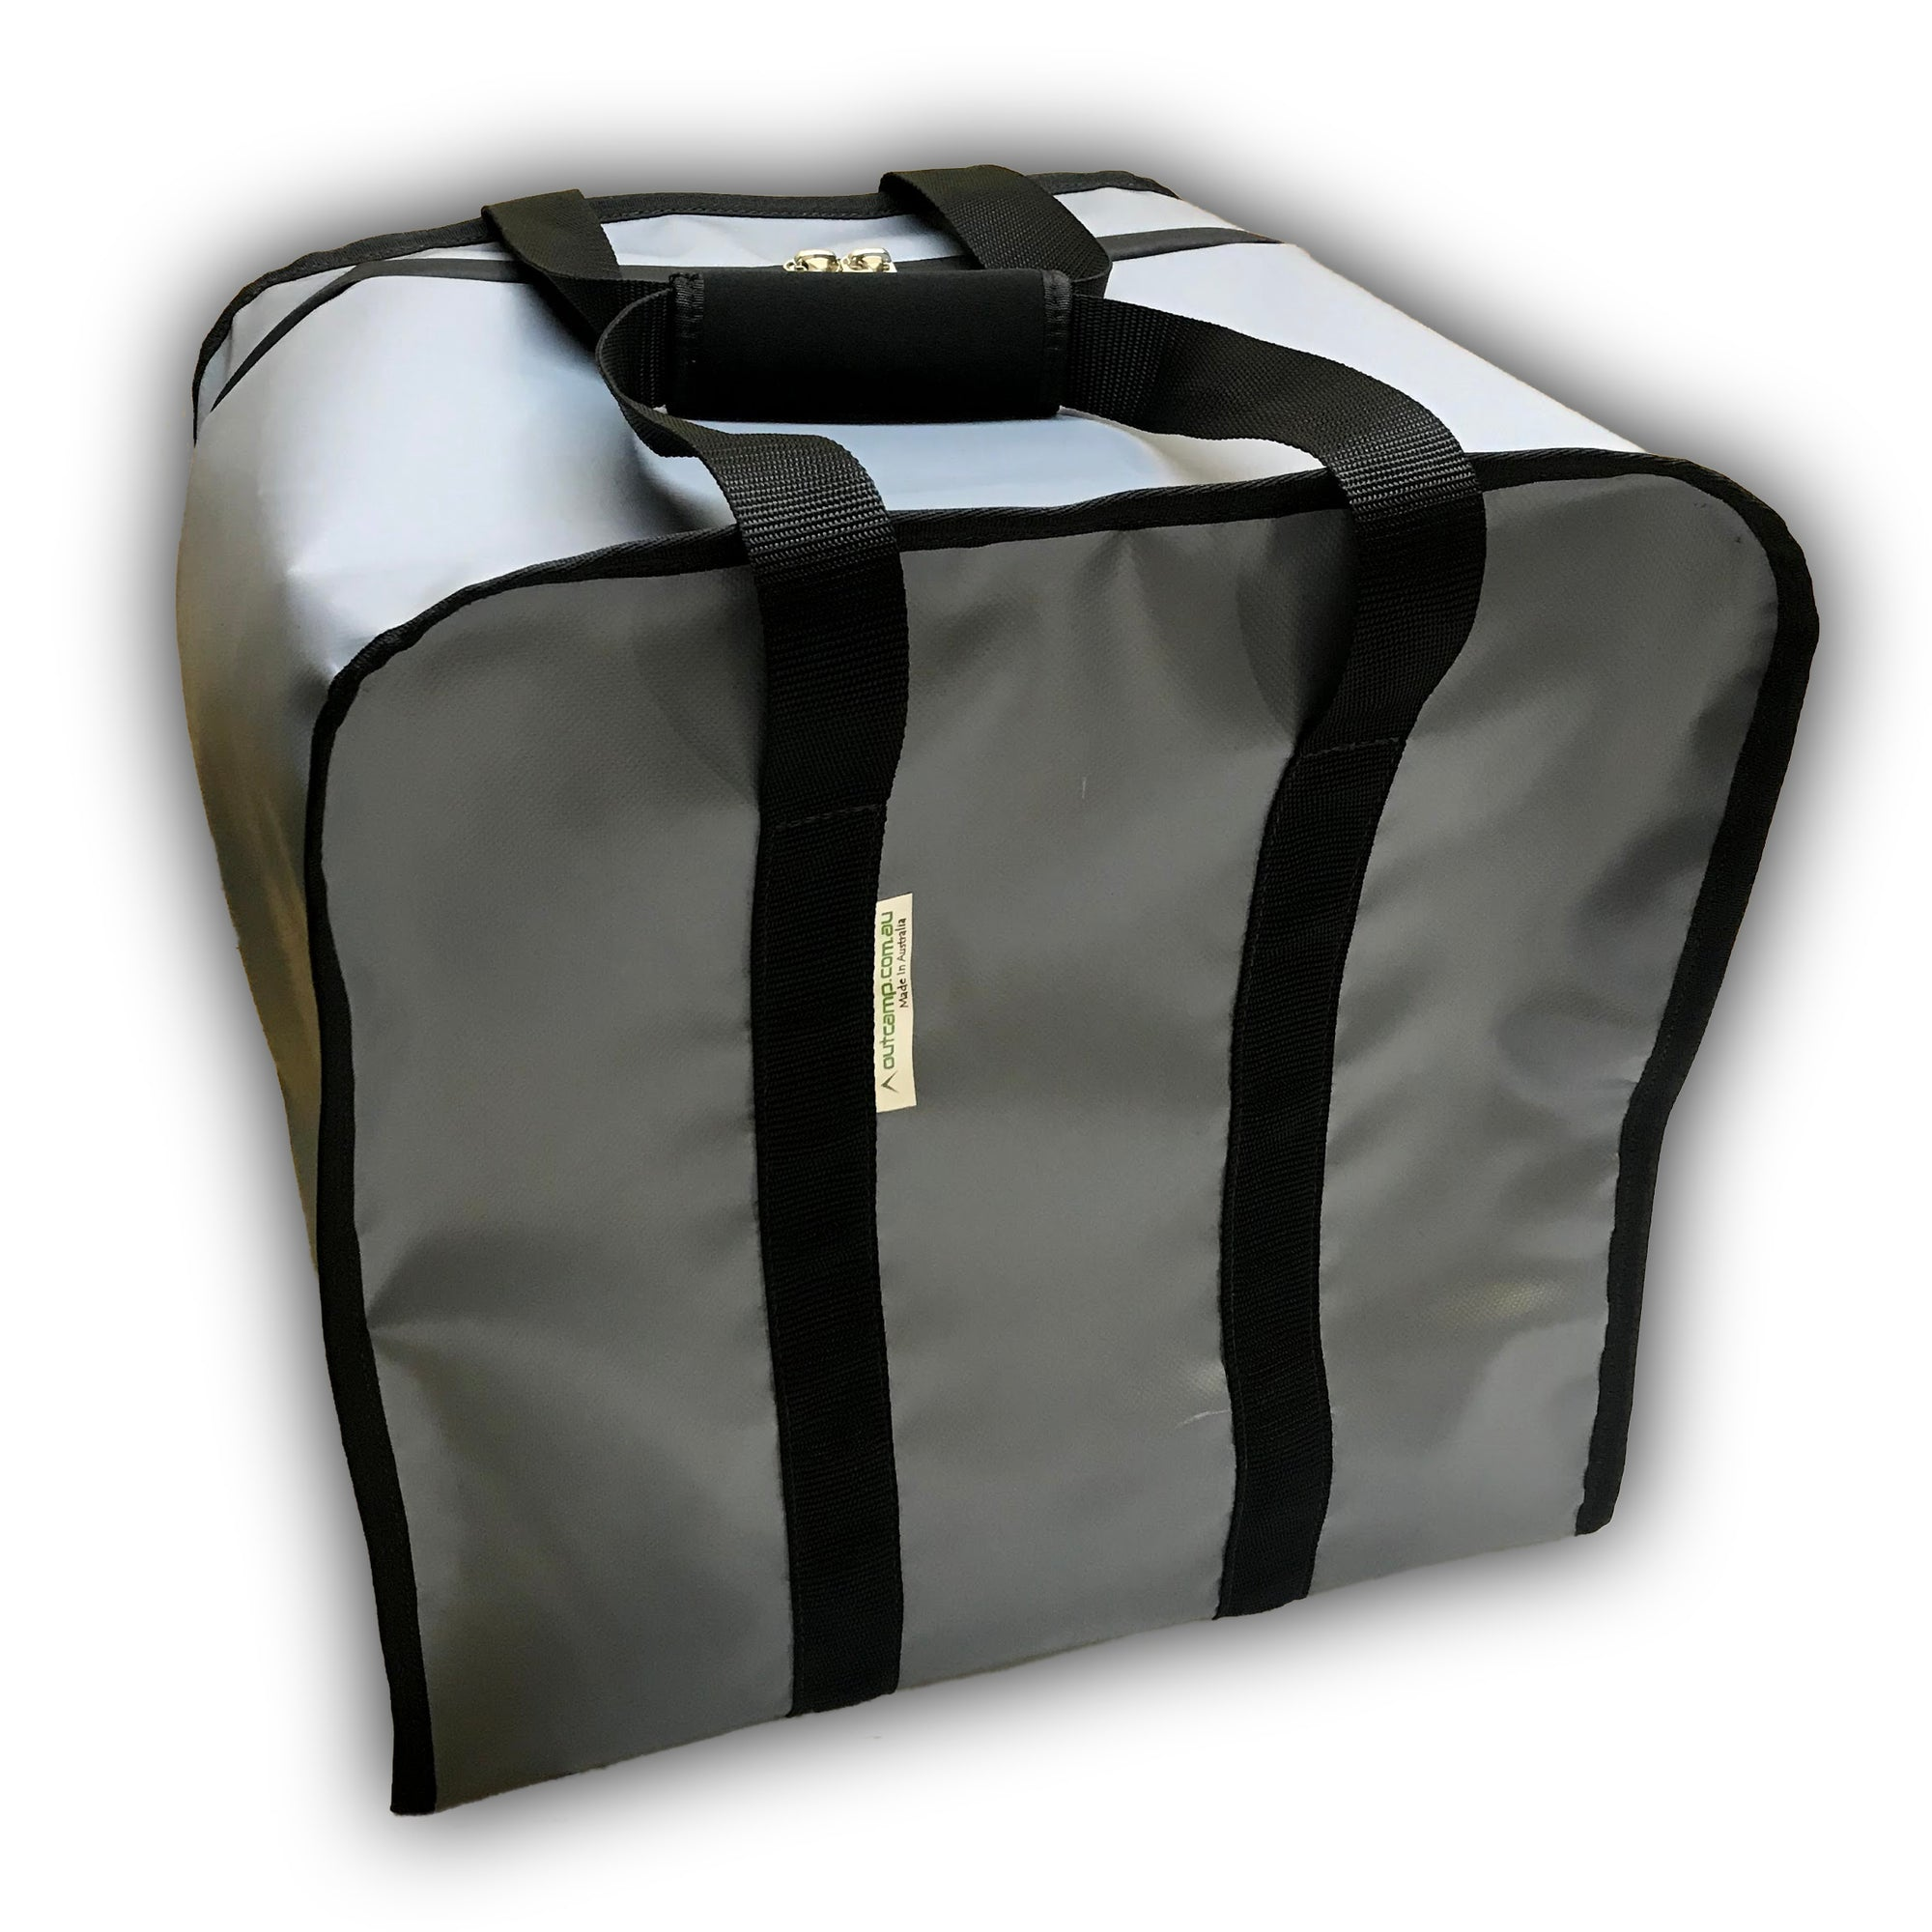 Fiamma Bi-Pot 34 carry bag for the caravan